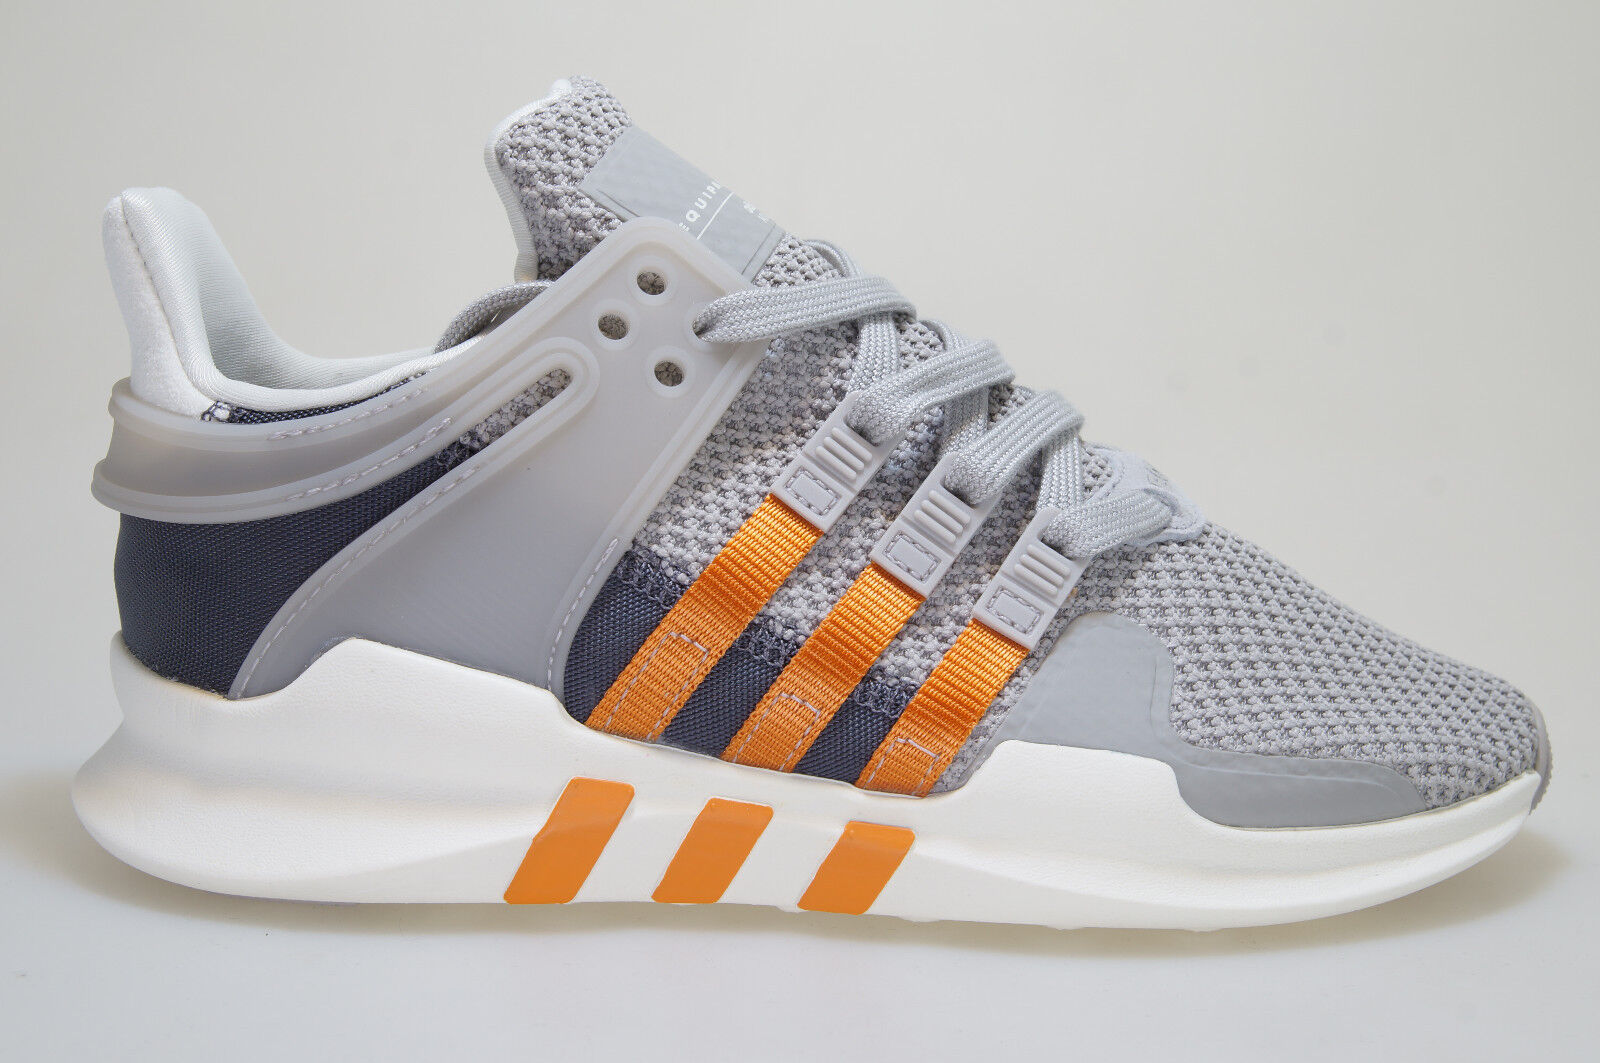 09537c704644be Adidas Equipment Support Shoes Adv w BB2325 EQT Trainers Shoes Support  Grey Orange 942387